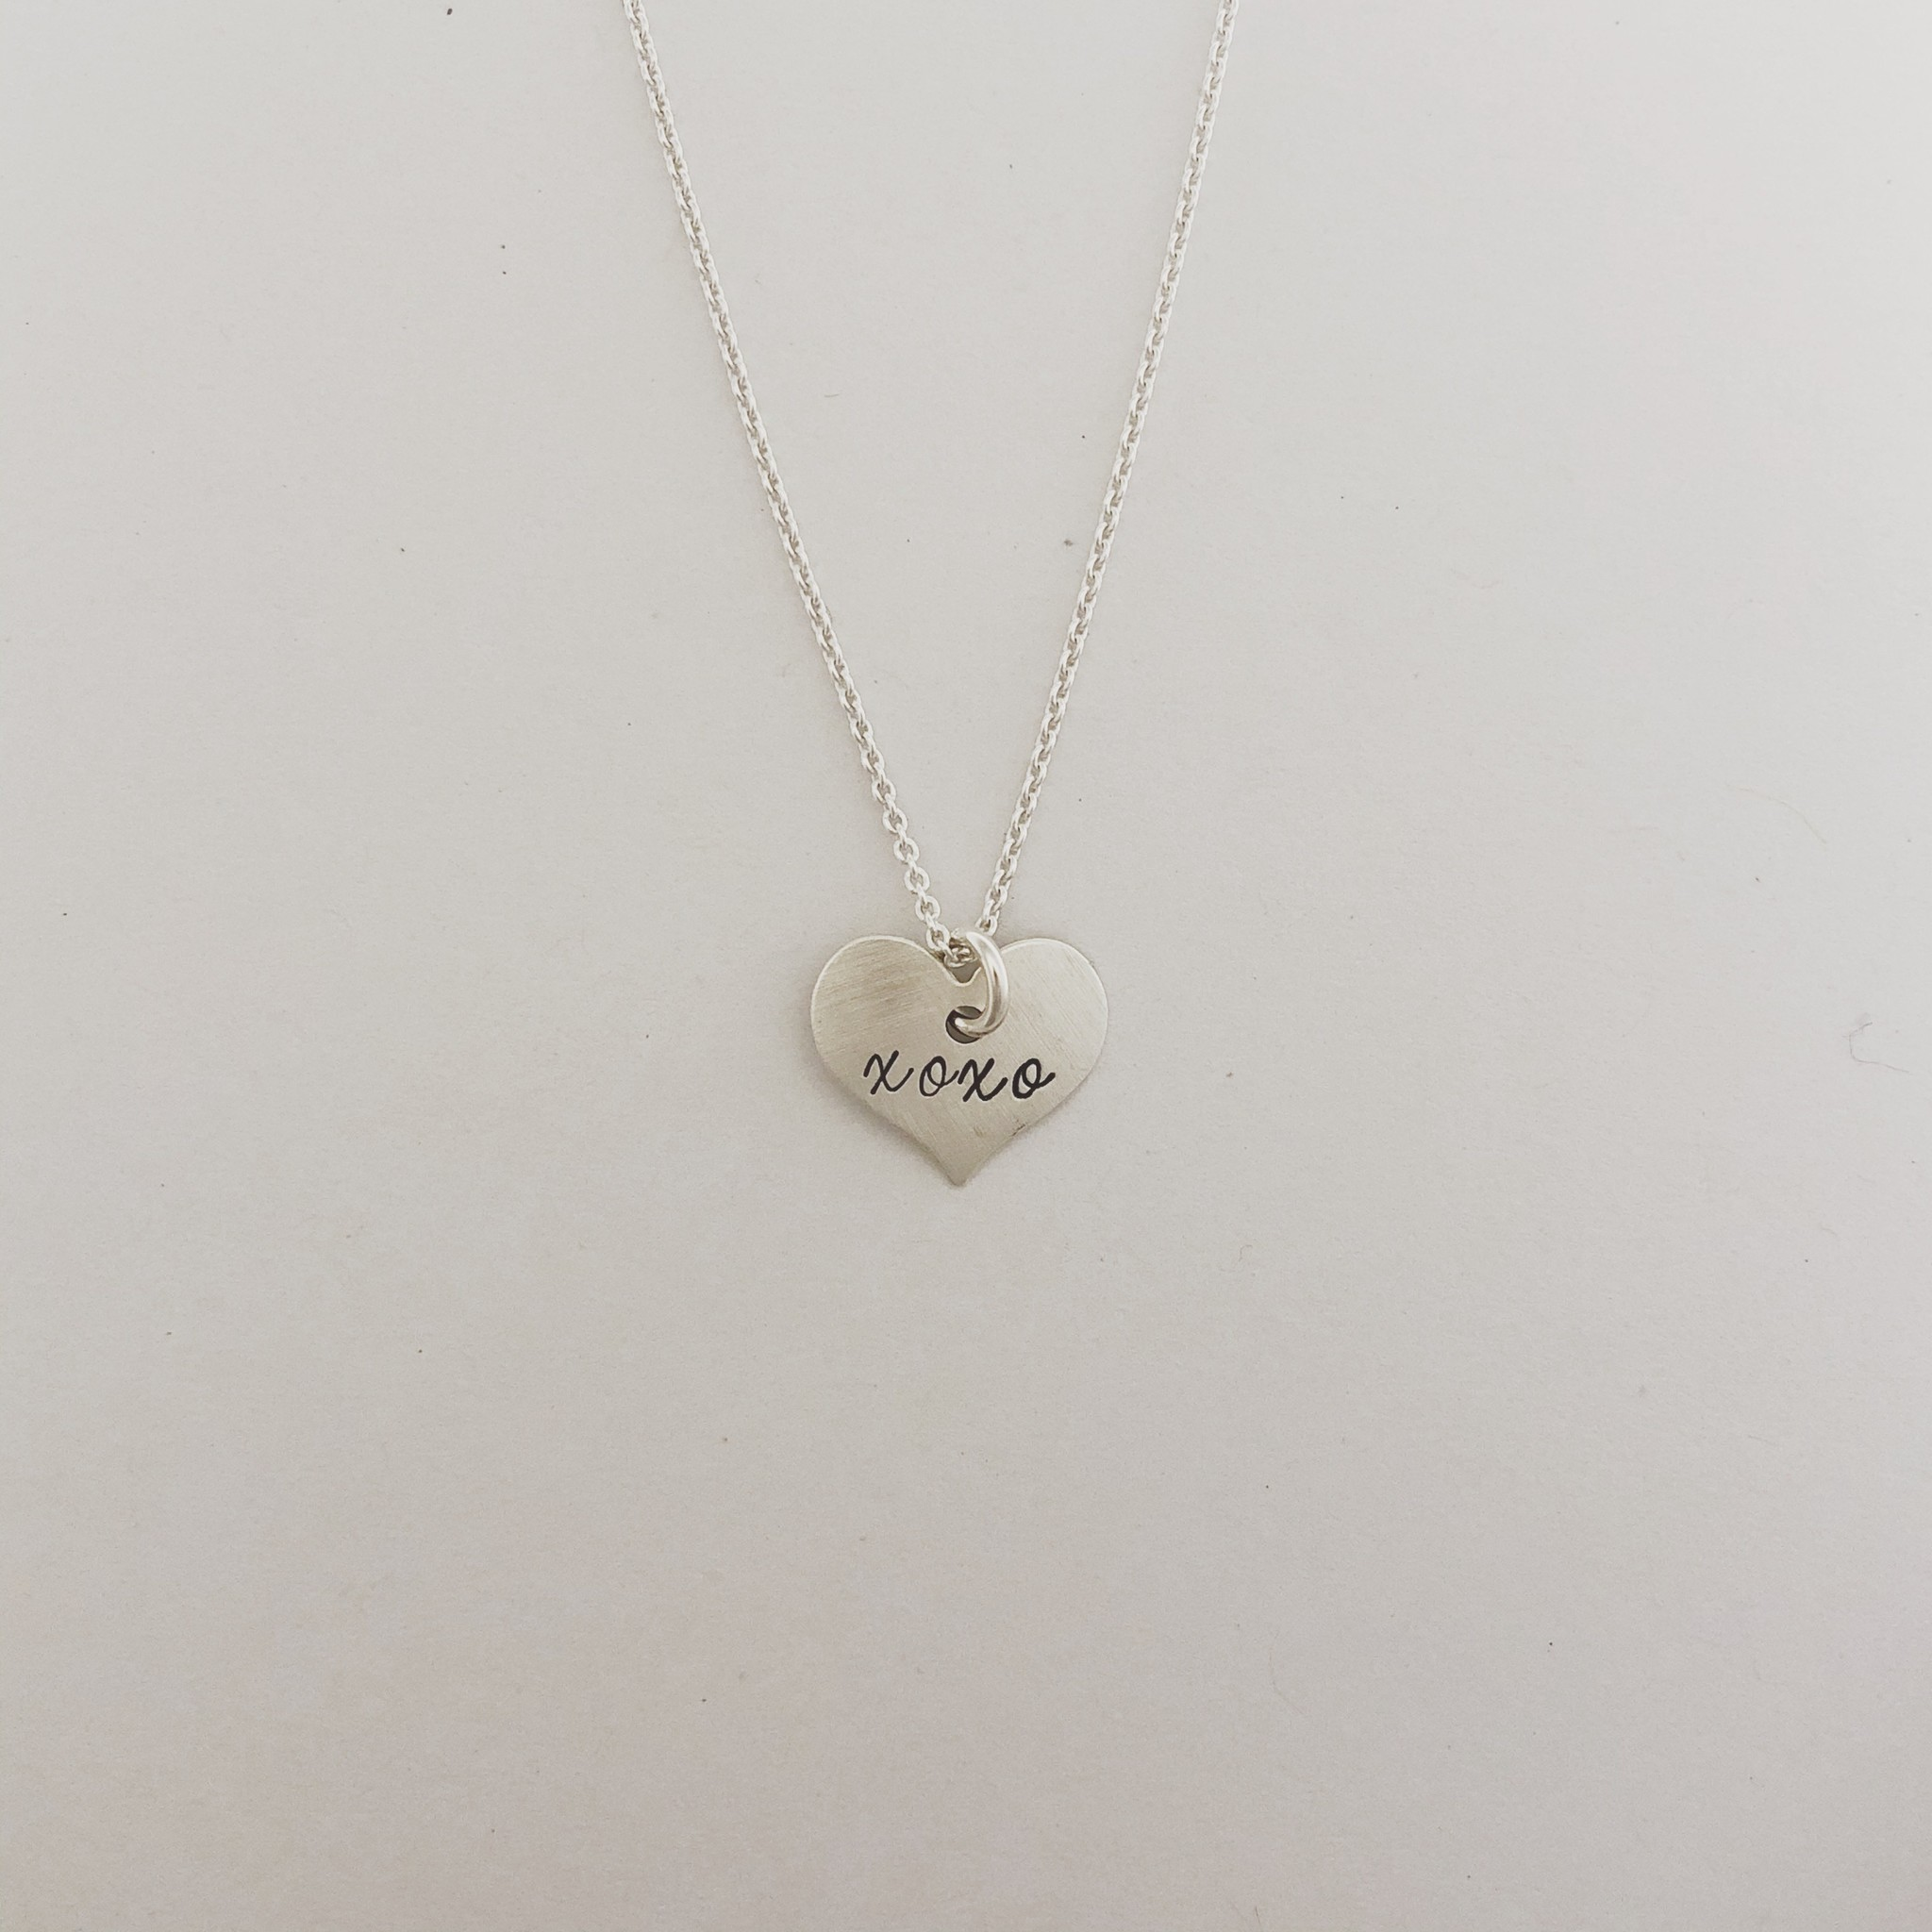 "Andrea Waines ""xoxo"" Inspired Heart Necklace"